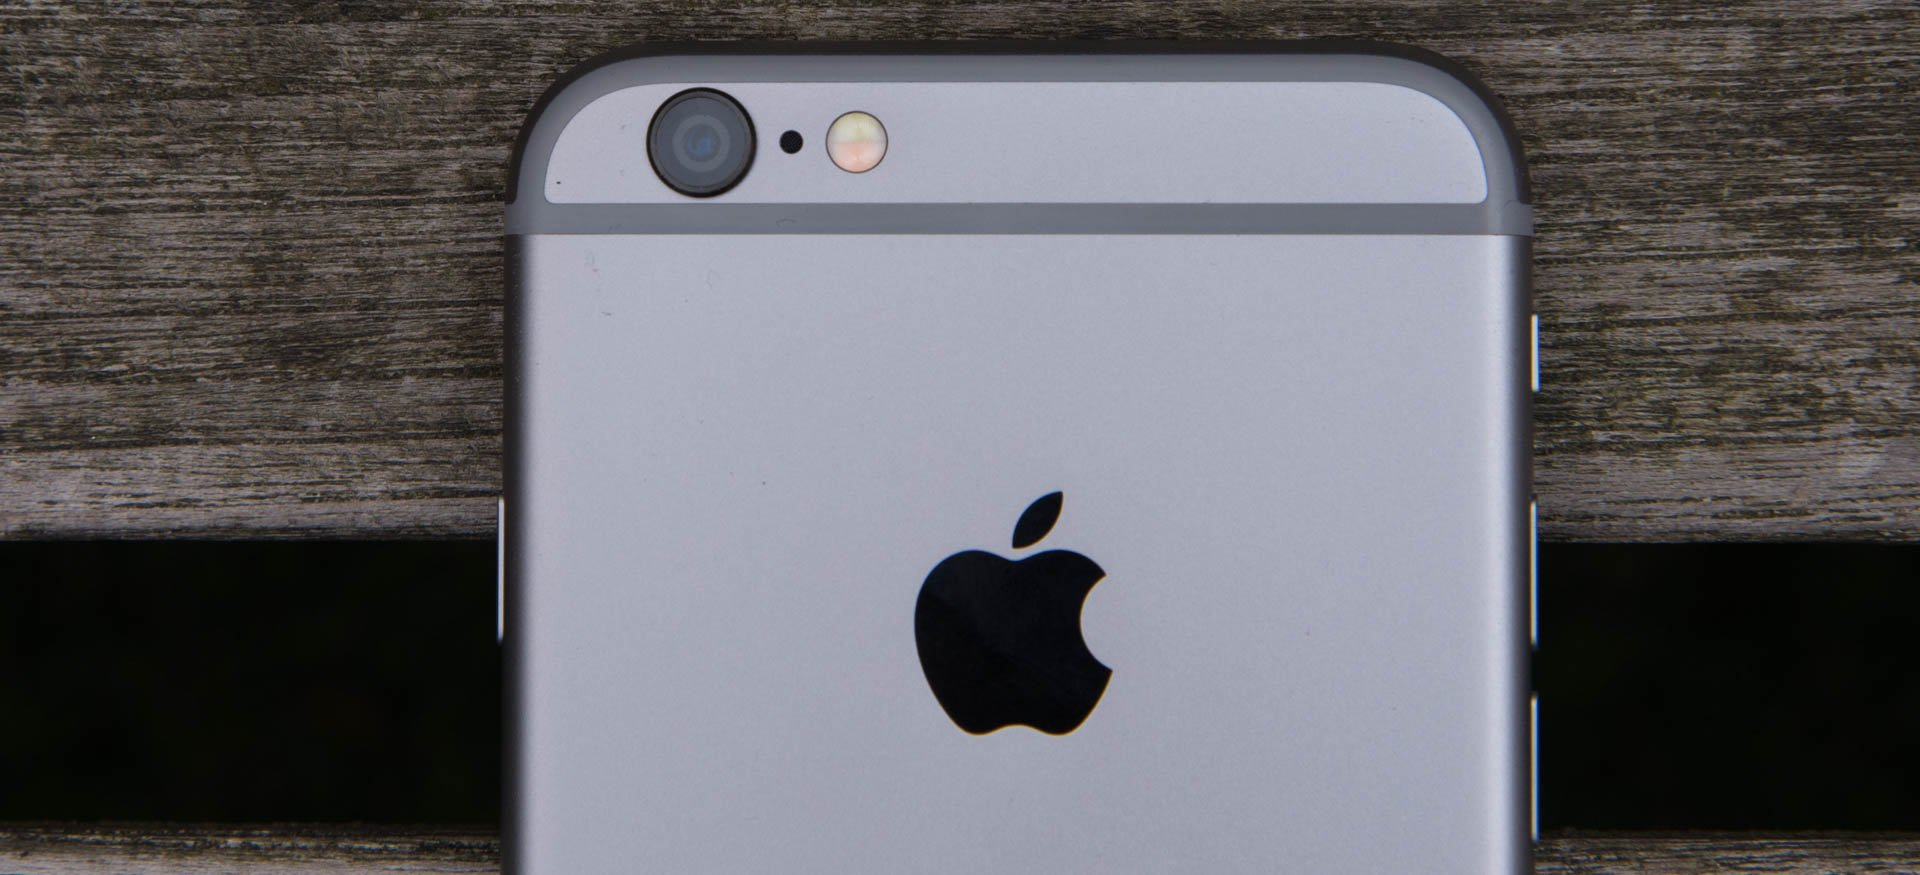 iPhone 6 camera | Expert Reviews